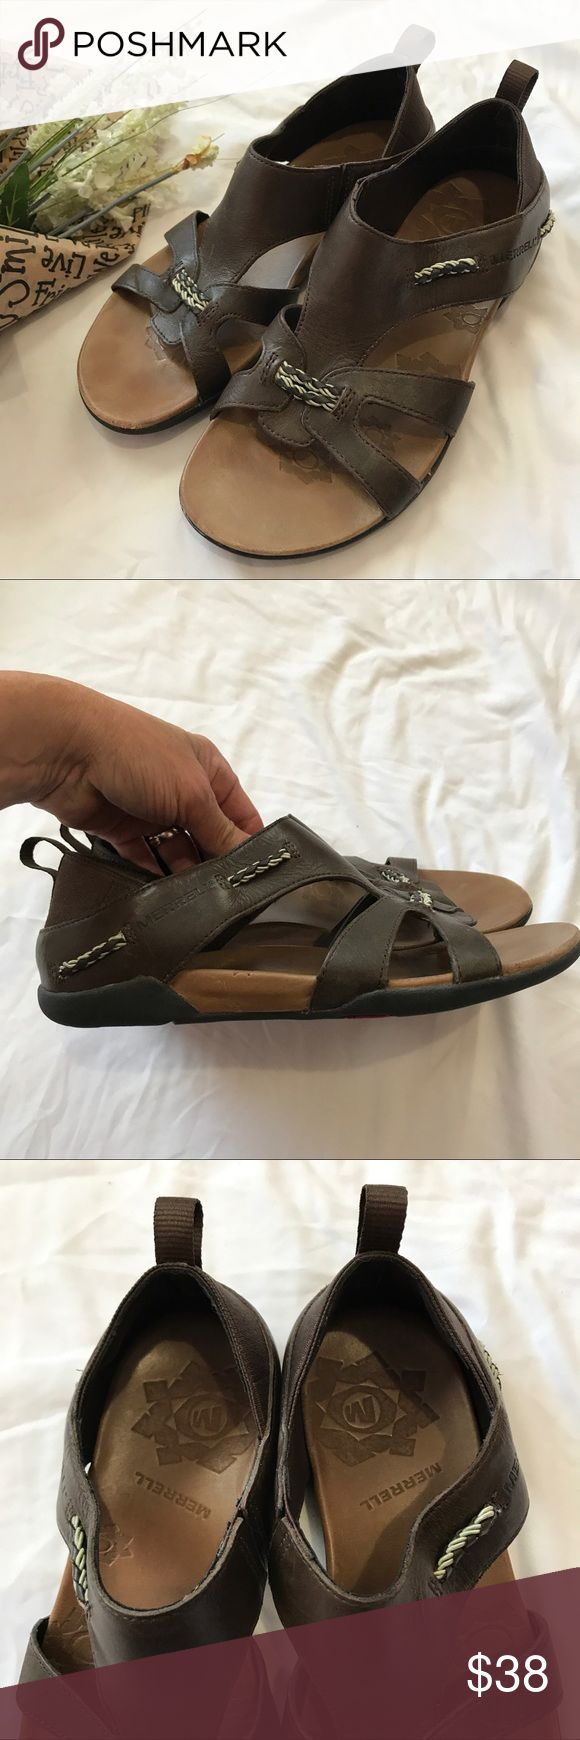 MERRELL Sandals Like new. Worn once. Brown leather. Size 7M. **Price firm. Merrell Shoes Sandals